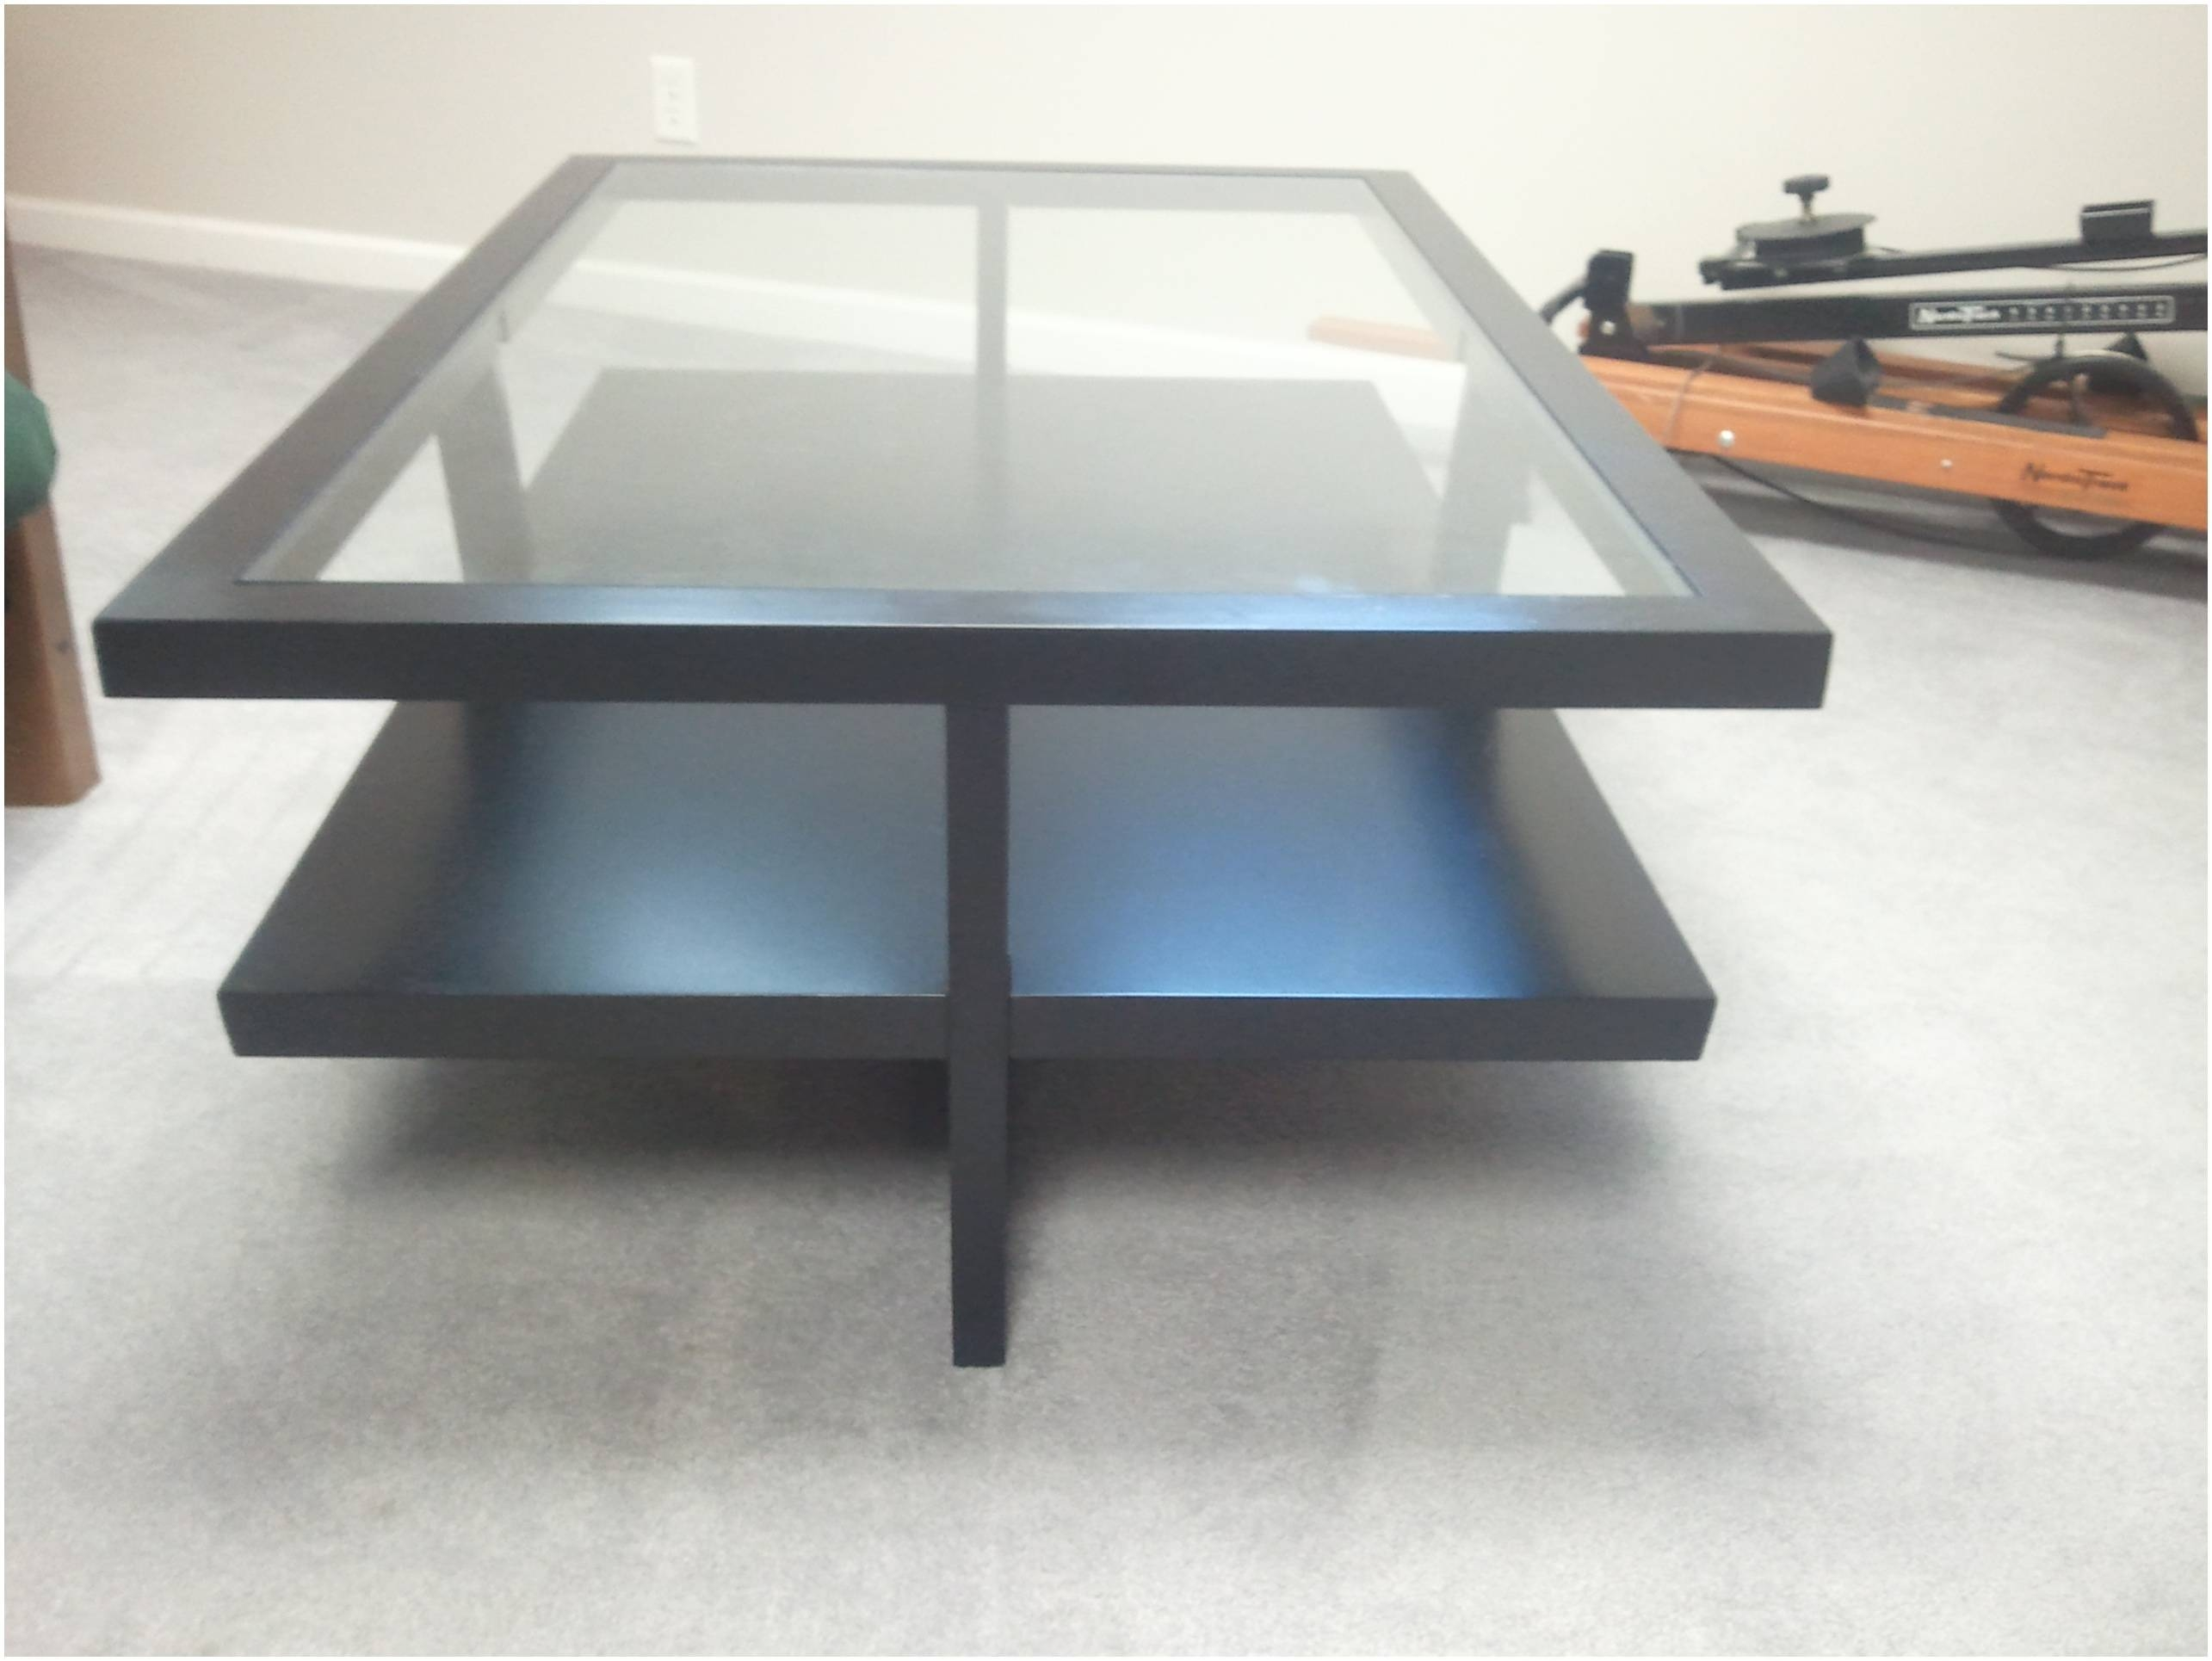 Modern Glass Coffee Tables Uk – Cocinacentral.co intended for Modern Glass Coffee Tables (Image 26 of 30)